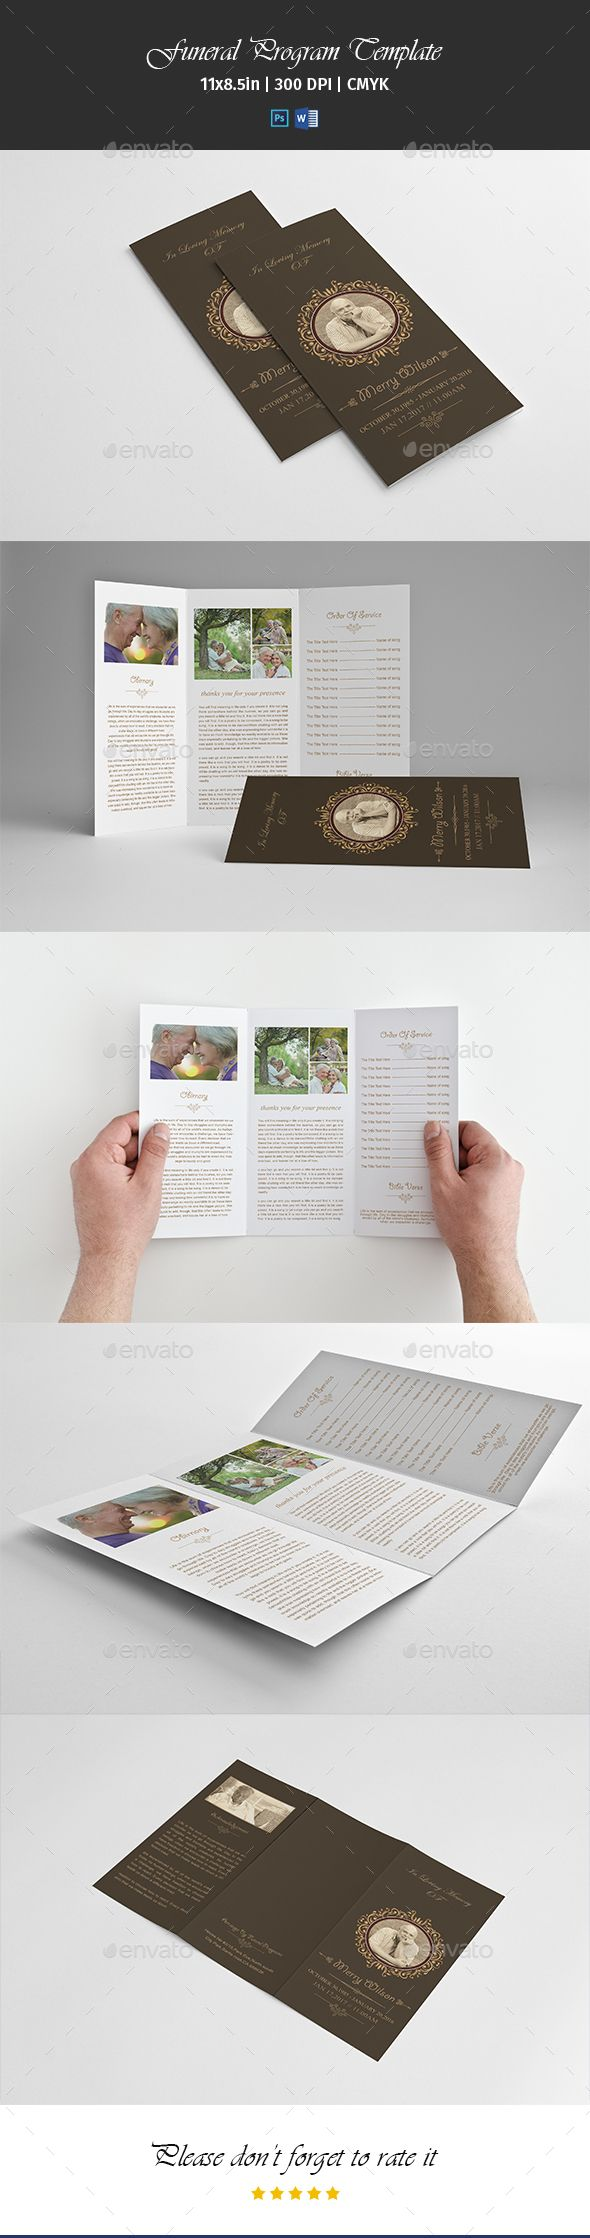 Fine 10 Tips To Write A Good Resume Big 100 Square Pool Template Round 12 Inch Ruler Template 15 Year Old Job Resume Youthful 1500 Claim Form Template Fresh16x20 Collage Template 25  Best Ideas About Program Template On Pinterest   Wedding ..